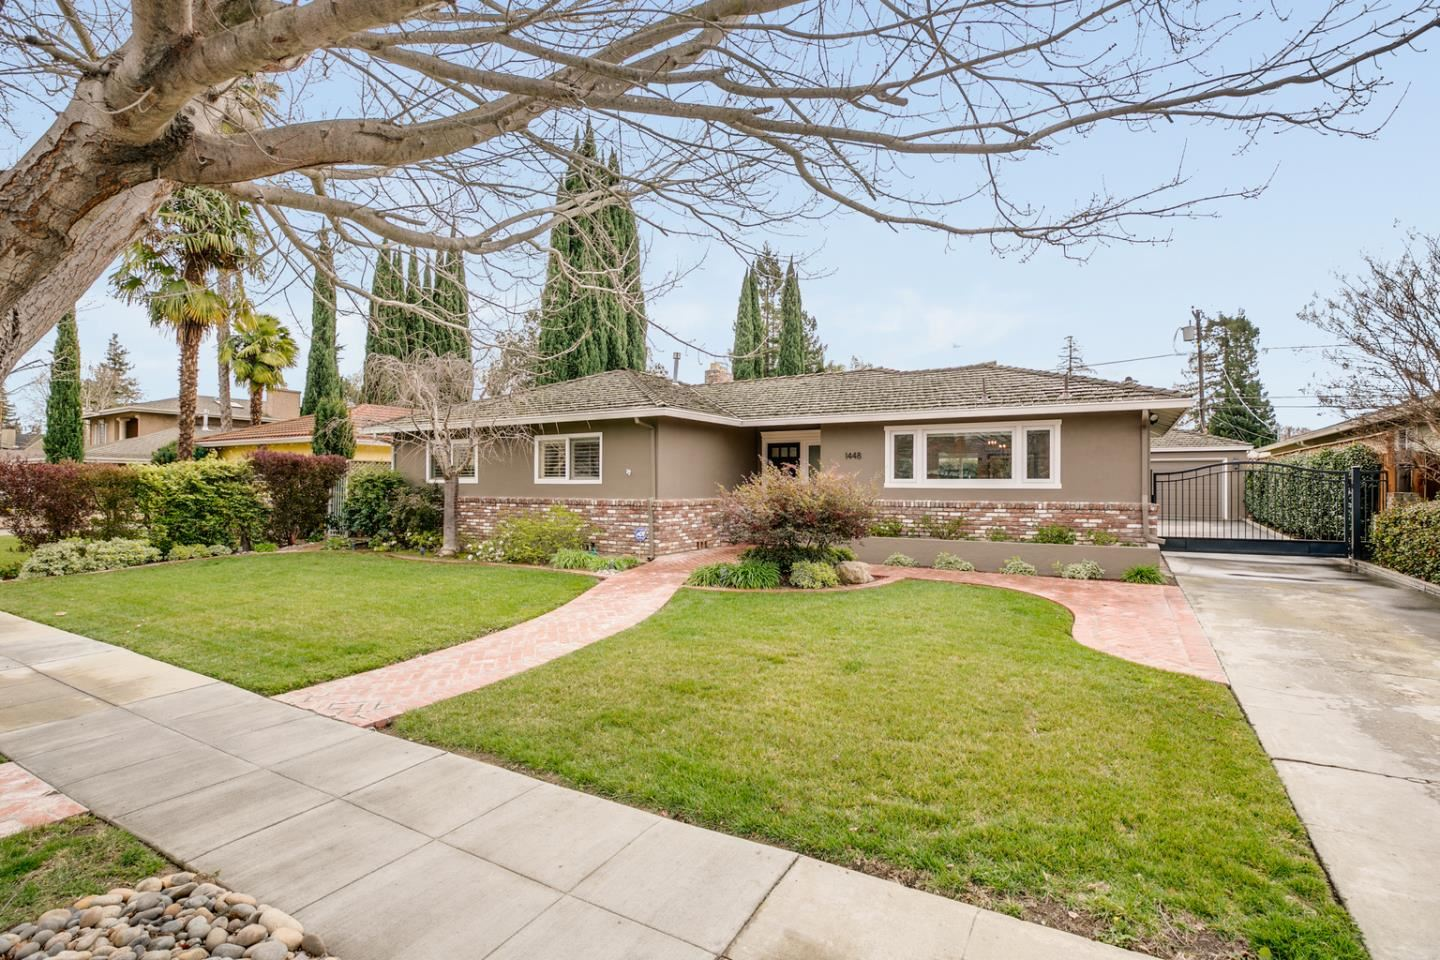 Photo for 1448 Cherry Valley DR, SAN JOSE, CA 95125 (MLS # ML81830956)